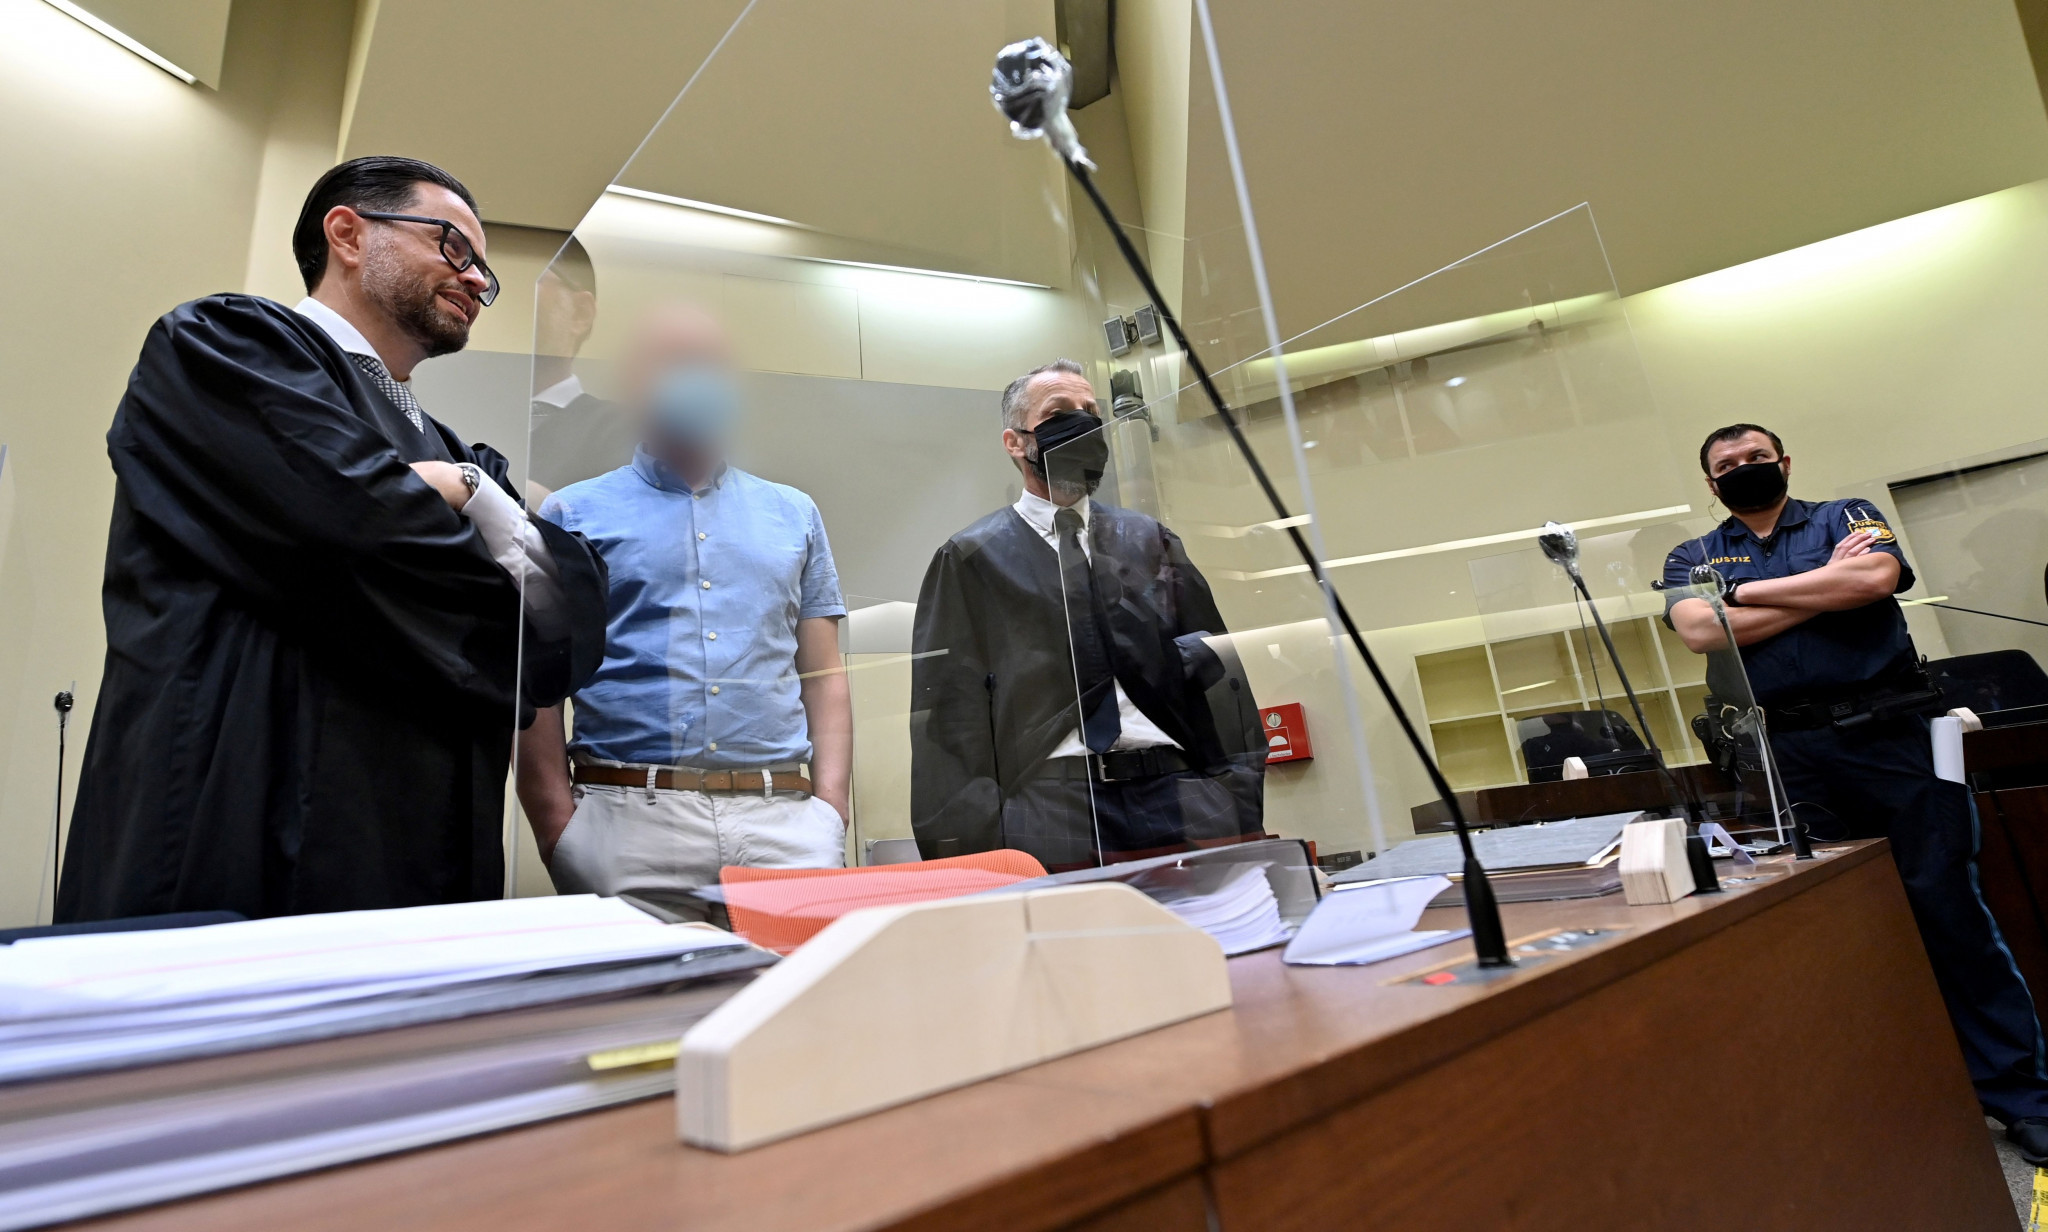 Doctor accused of overseeing blood doping ring goes on trial in Munich